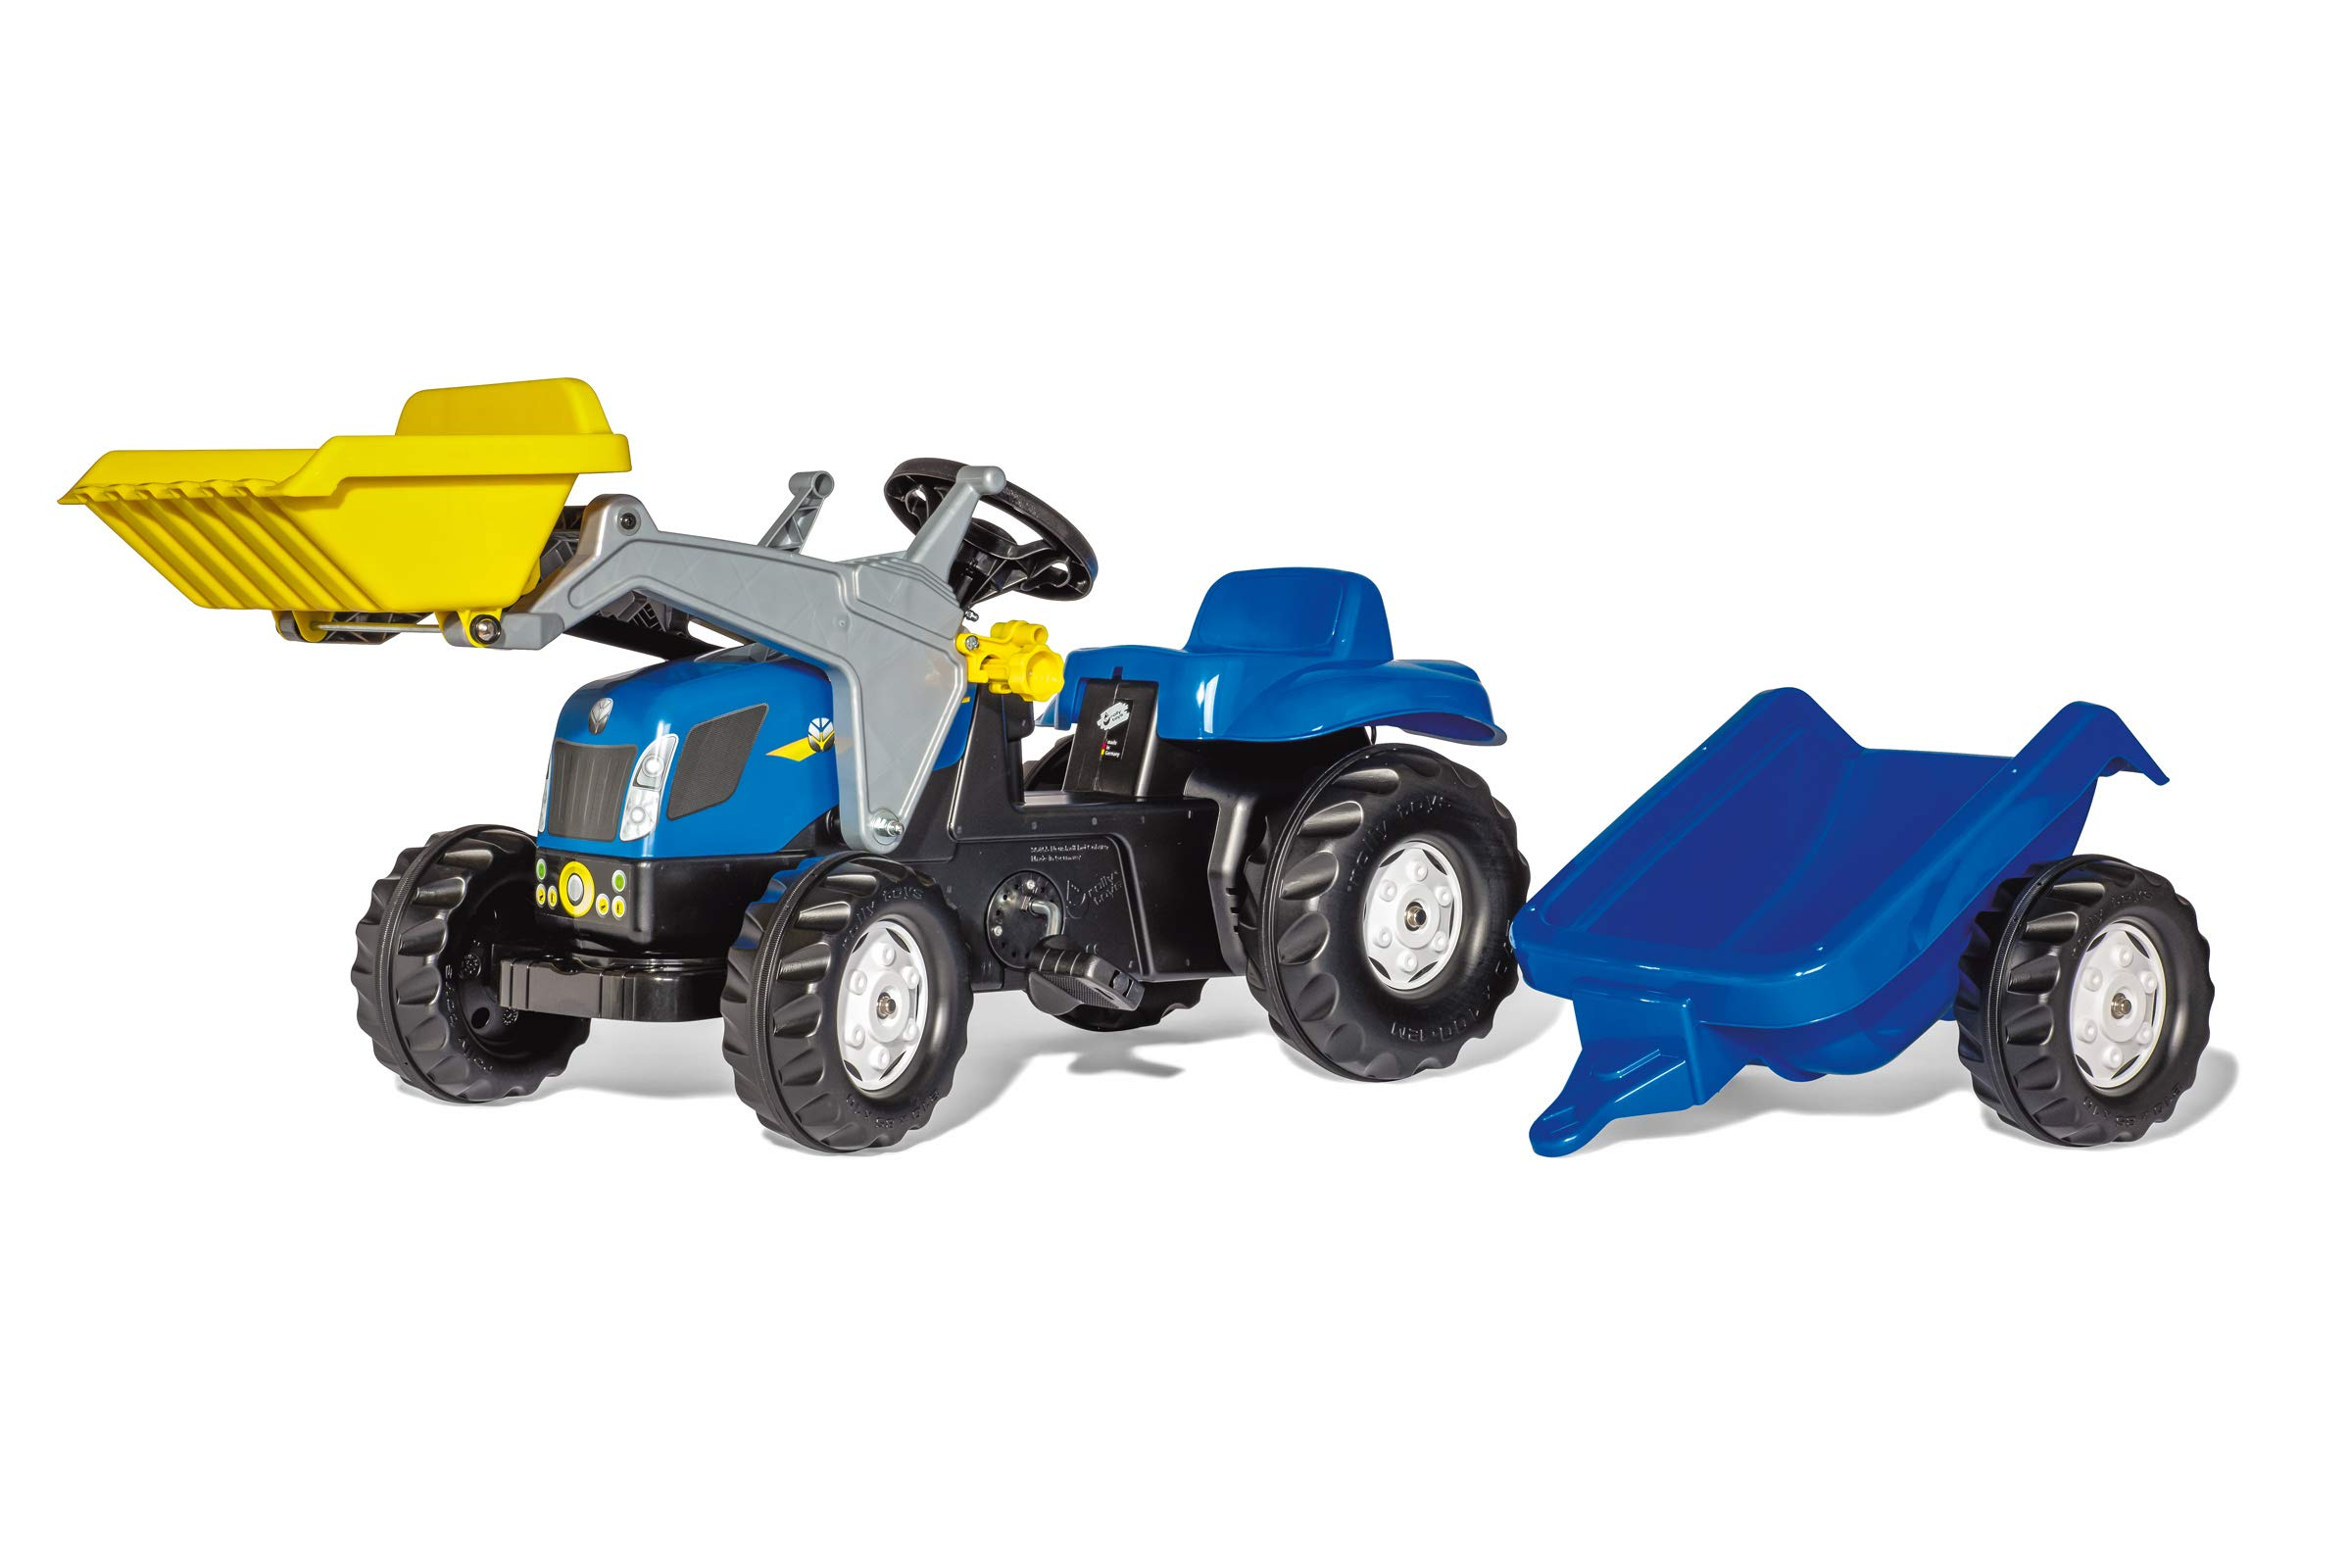 Rolly Toys New Holland Kid-X Front Loader Tractor, Blue by rolly toys (Image #1)